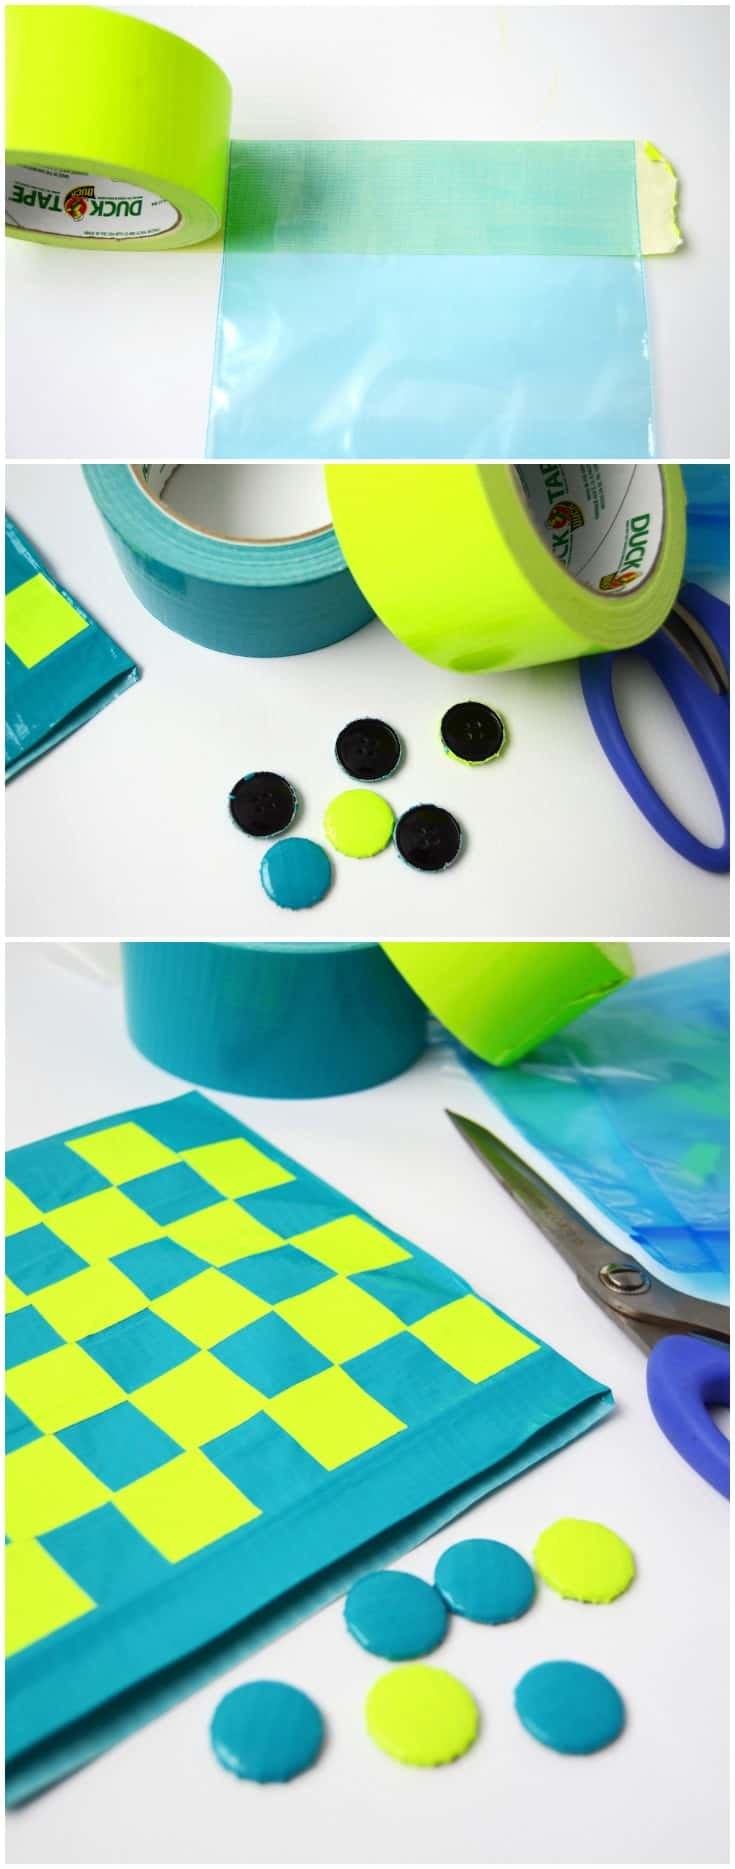 This travel DIY checkers game is so easy to make with Duck Tape! You probably already have the supplies in your home. Kids will love it!